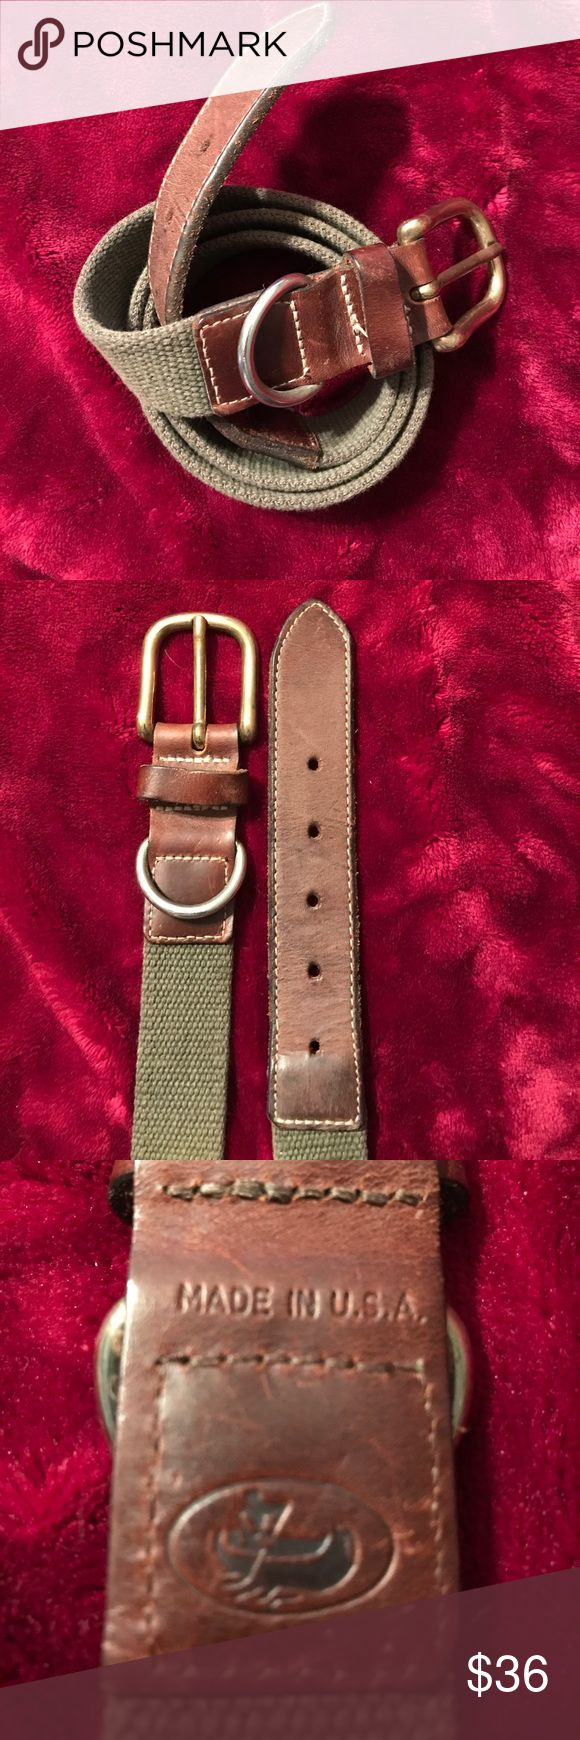 ❤️SALE2DAY❤️Waterman's Canvas & Leather Belt 40 Waterman's Heavy Olive Canvas & Brown Leather Belt w/ Brass Buckle & D-Ring. Man Paddling Canoe maker's mark leather stamp, heavy stitching. Made in USA. Made to last. Size 40 Accessories Belts